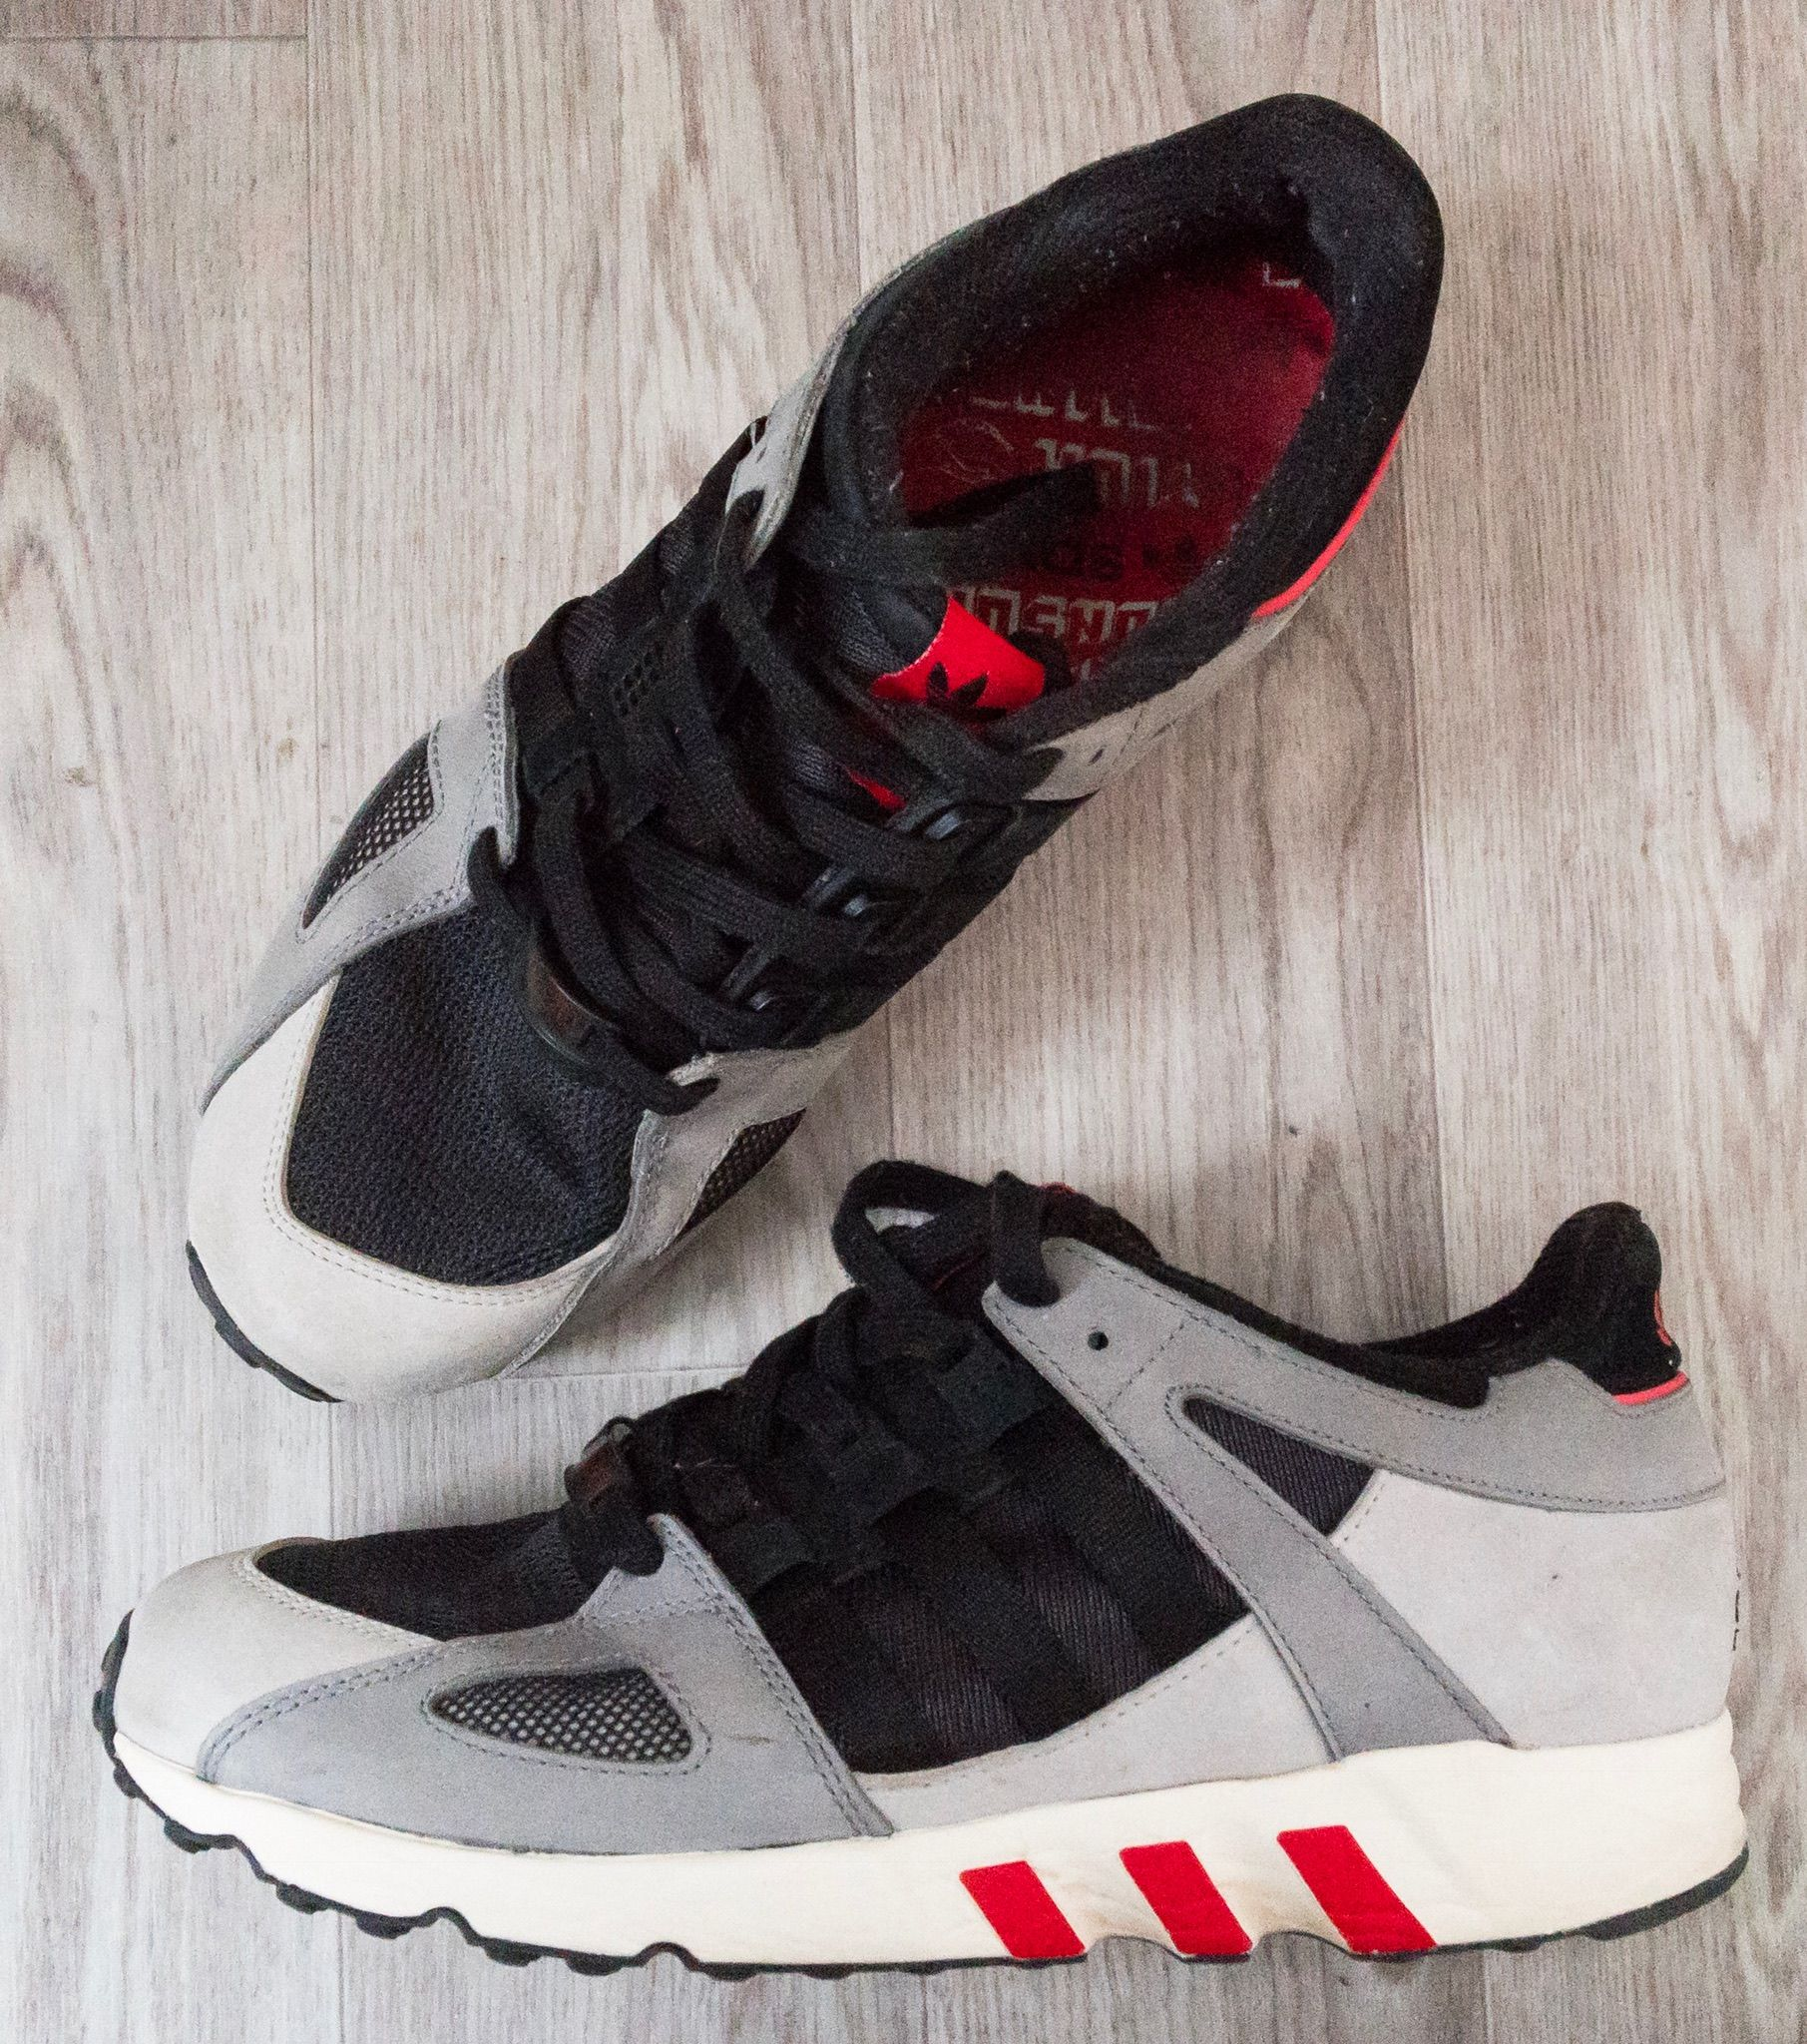 Adidas Consortium EQT x Solebox. Article: B35714. Year: 2014. Made in